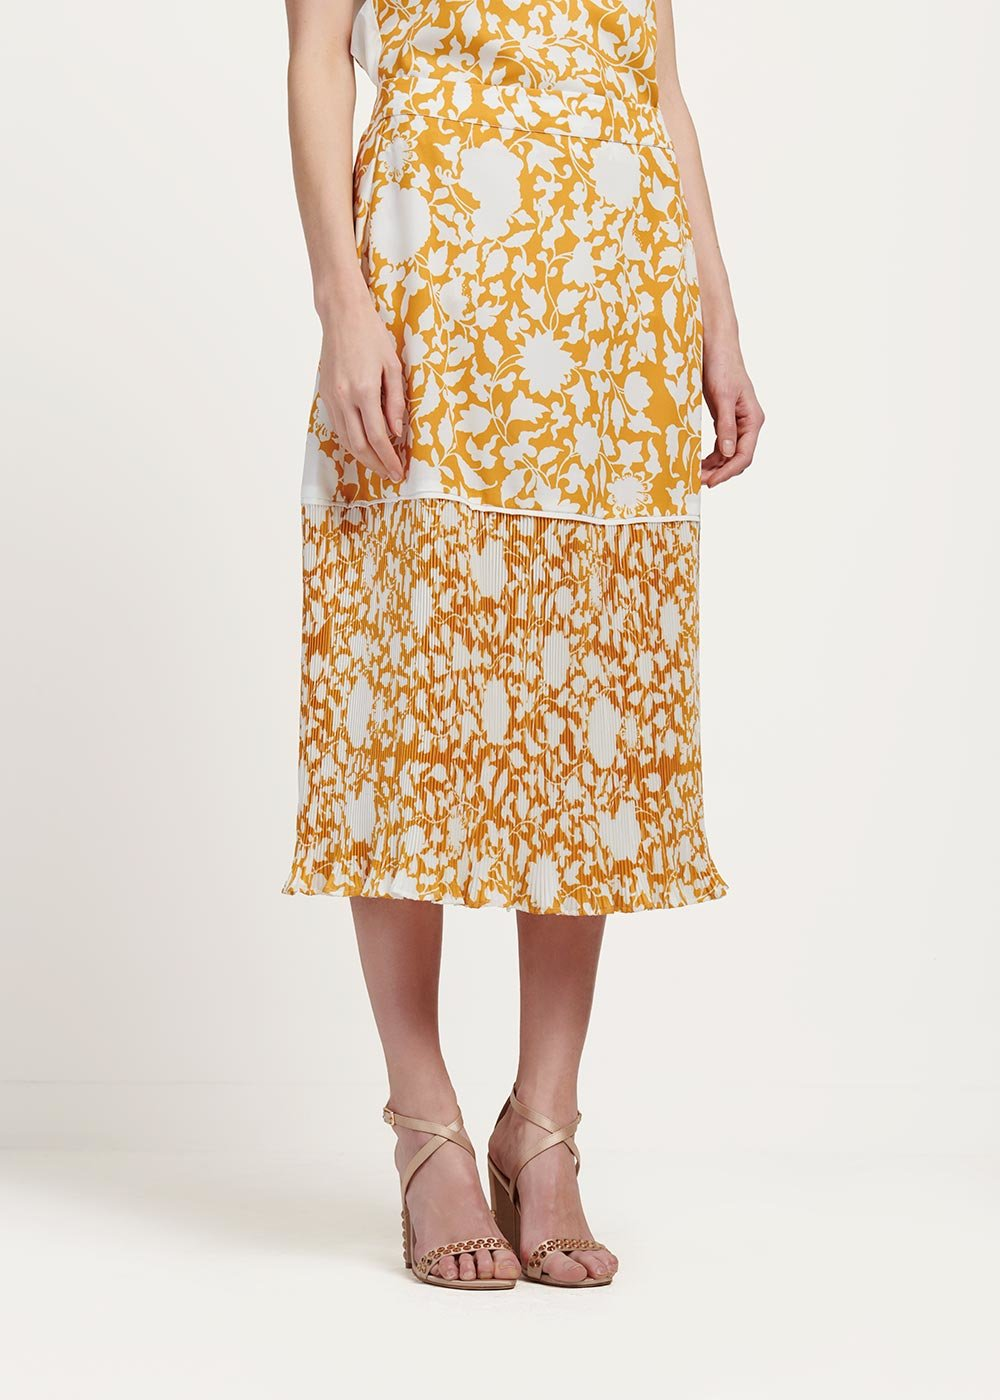 Gisel long patterned skirt - Sole\ White\ Fantasia - Woman